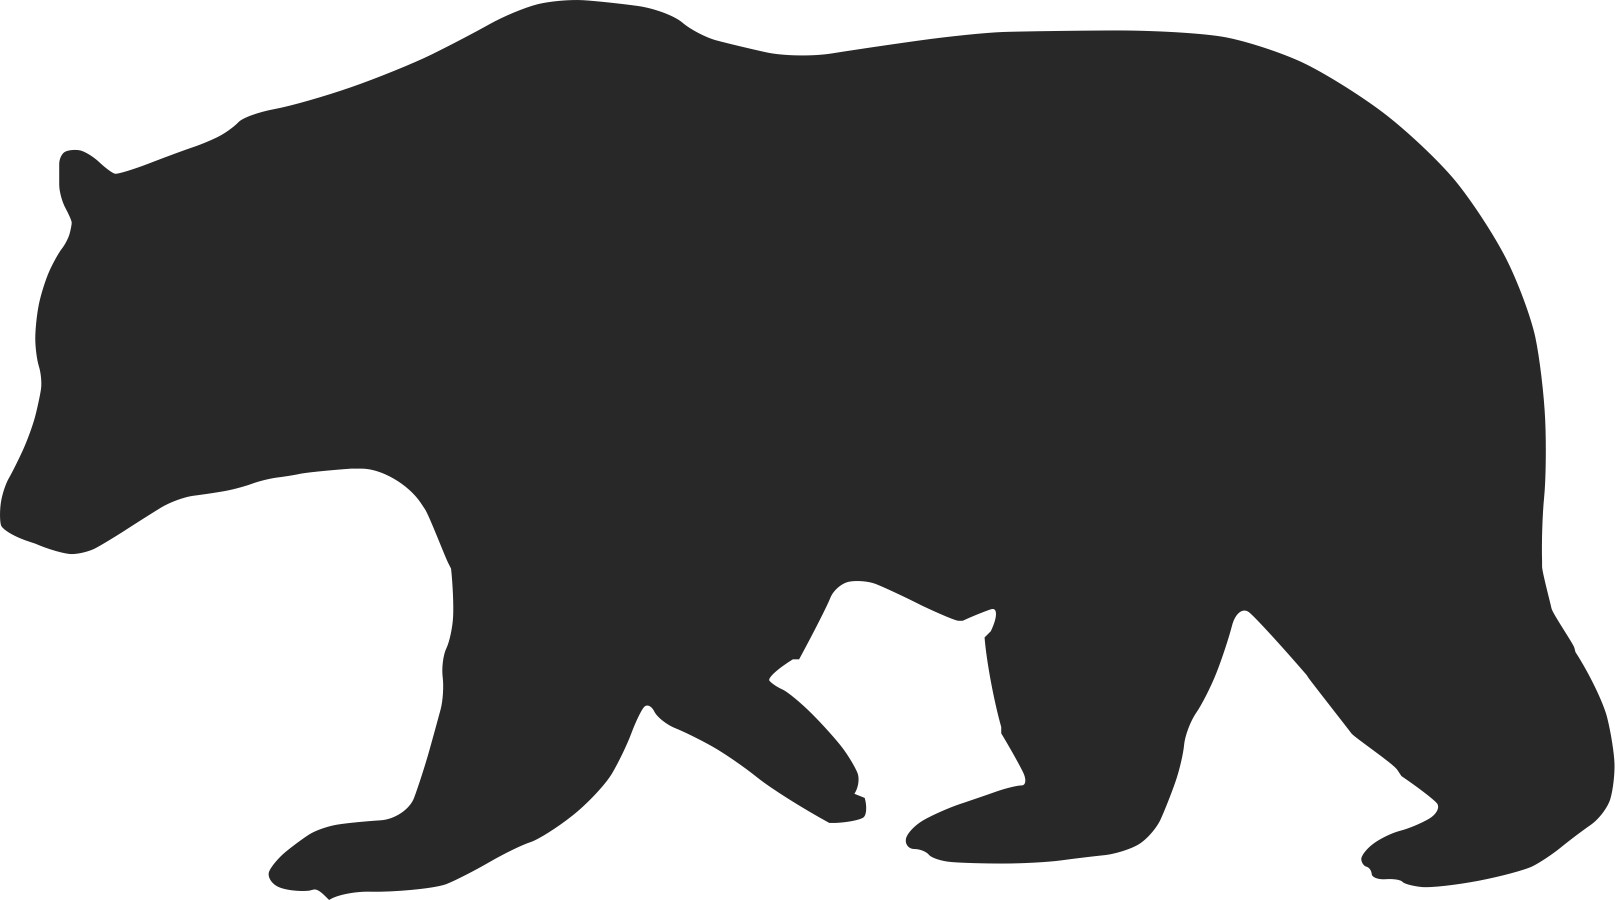 Elephant Clipart Silhouette at GetDrawings.com | Free for personal ...